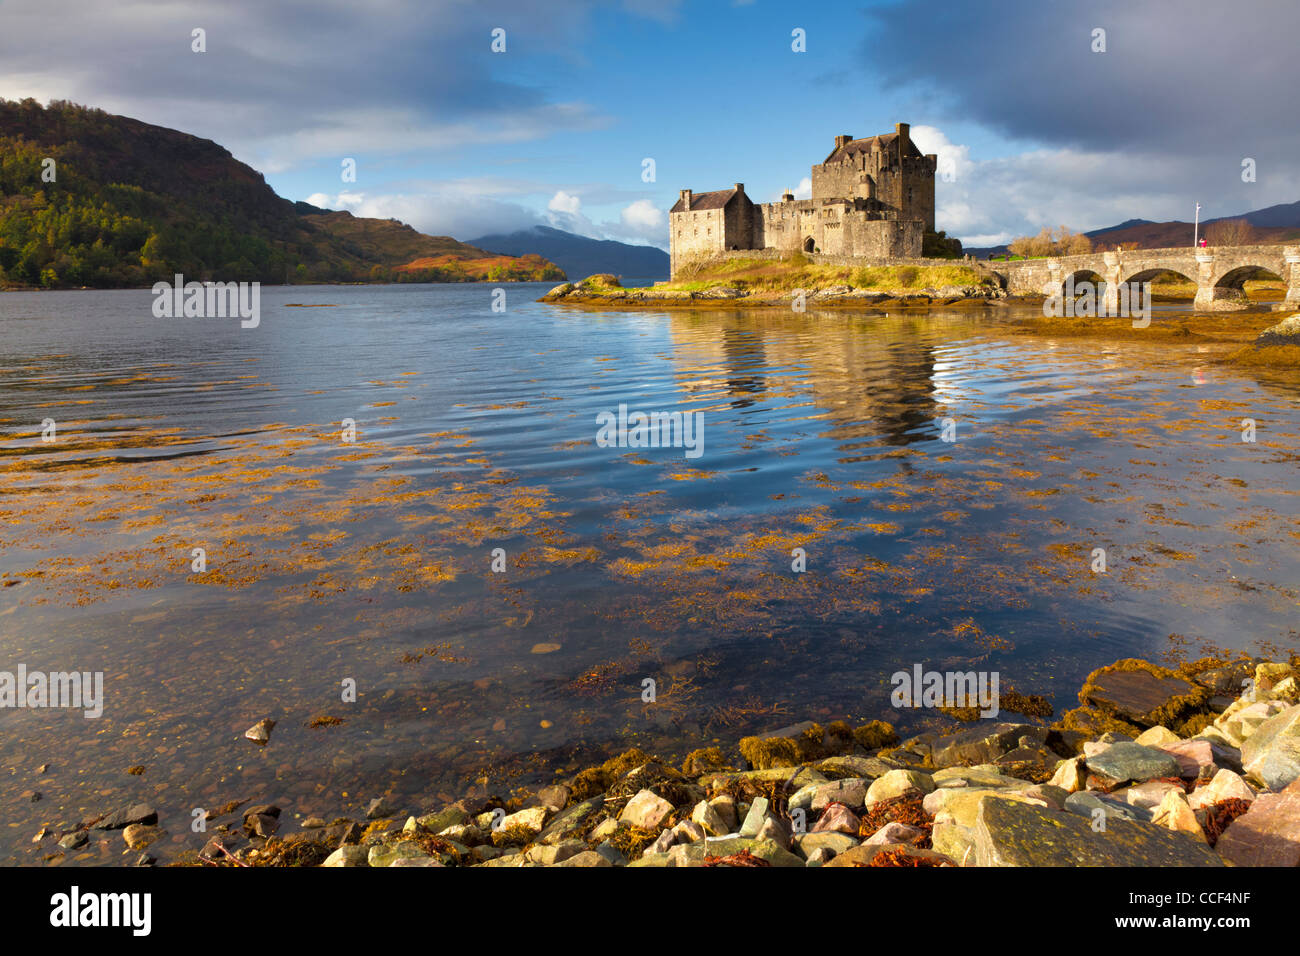 Eilean Donan Castle near Dornie on the road to the Isle of Skye - Stock Image